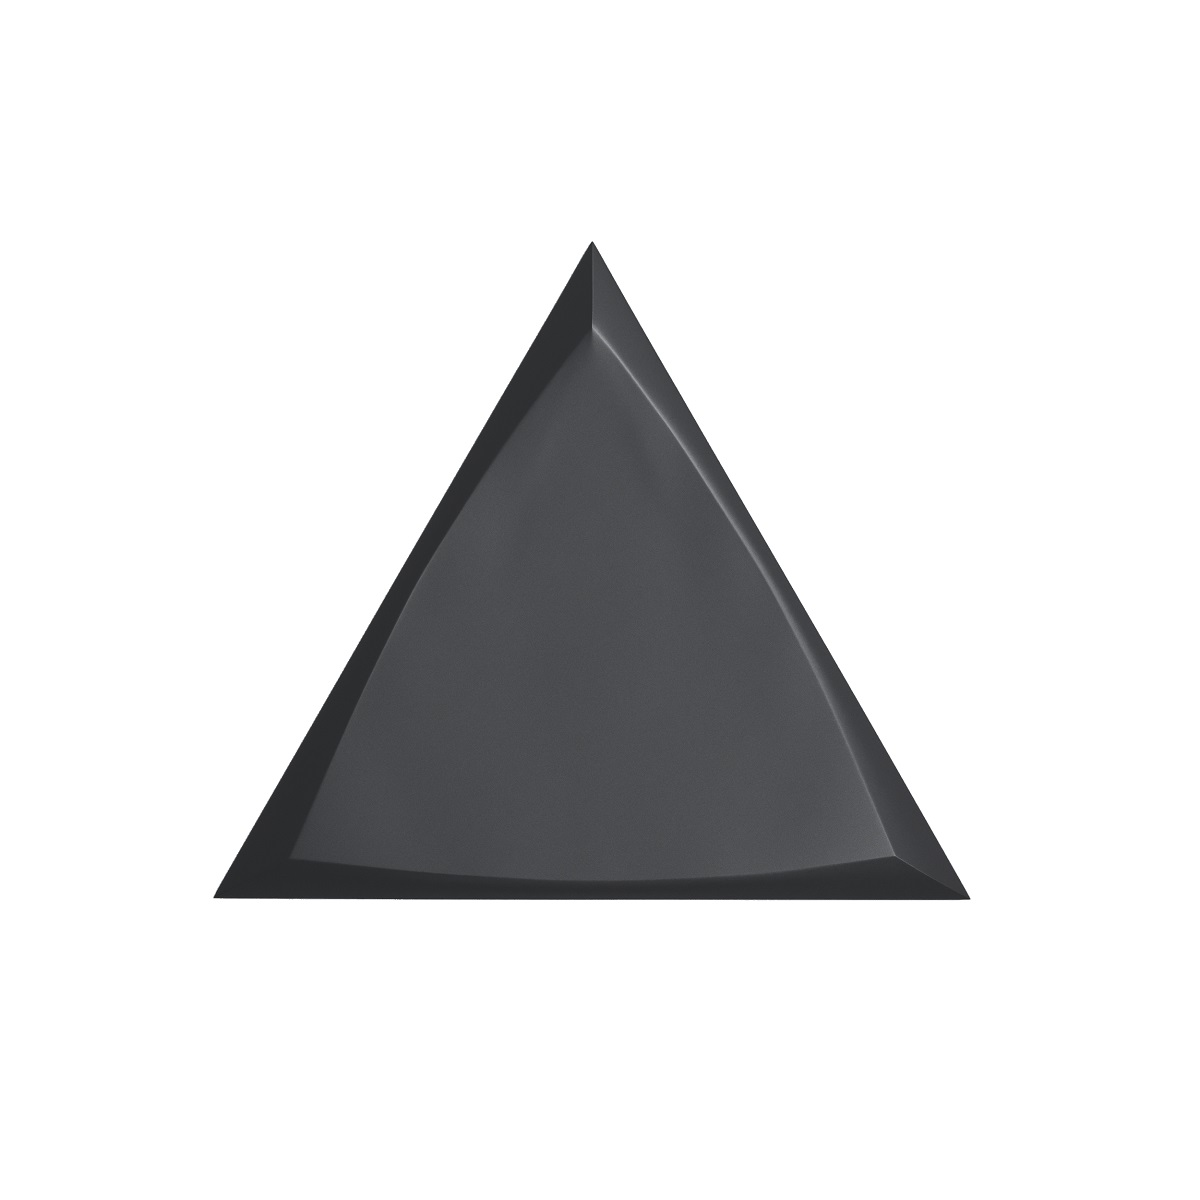 image/catalog/product_series_tiles/874/TRIANGULO_CONCAVO_NEGRO_MATE_smaller_pixel.jpg